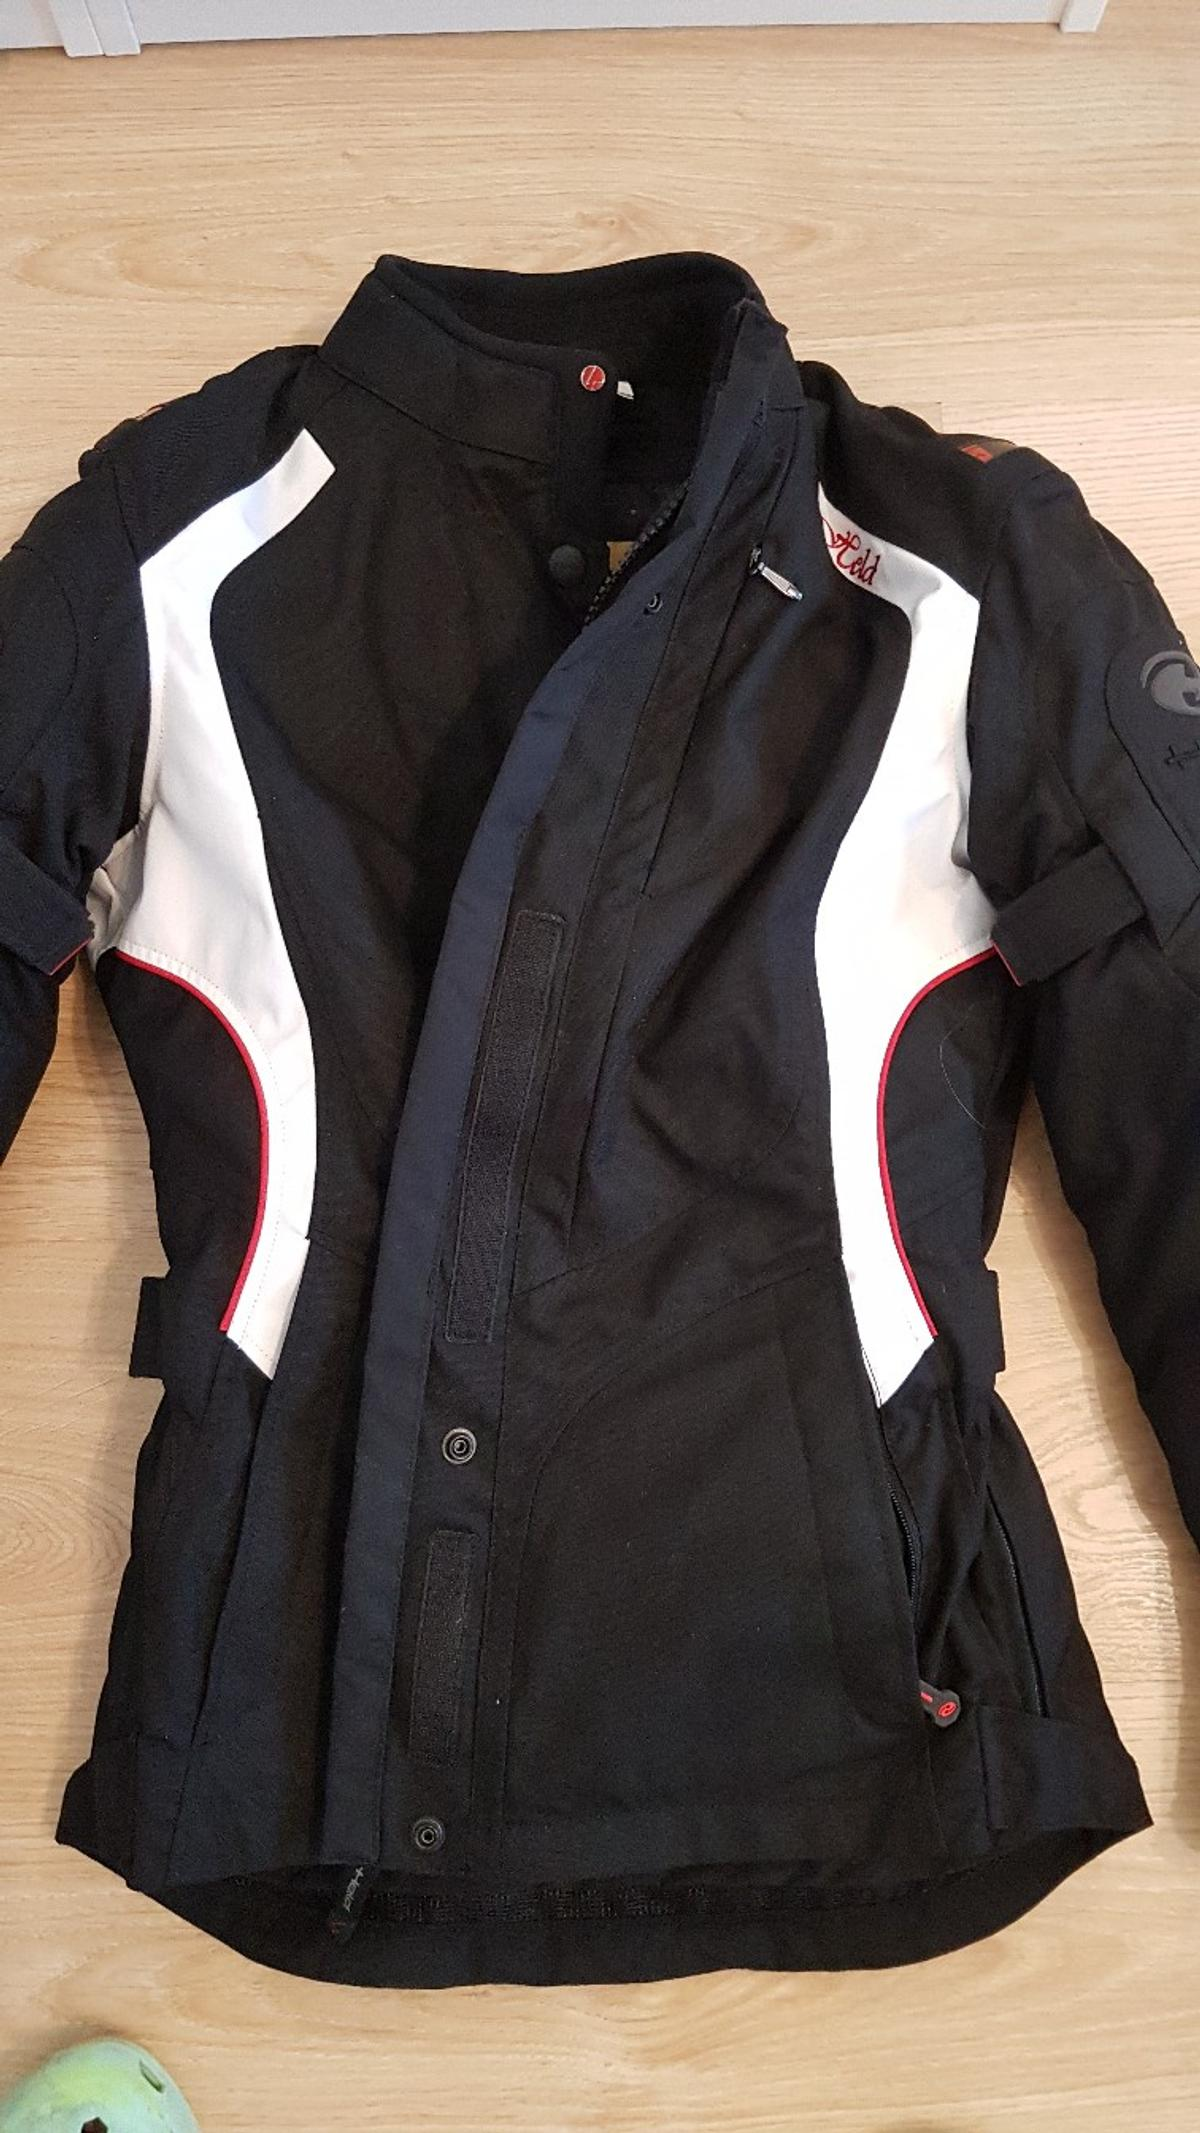 €90 Held 8421 Matzelsdorf In For MotorradjackeDamen 00 jSpULqMzVG